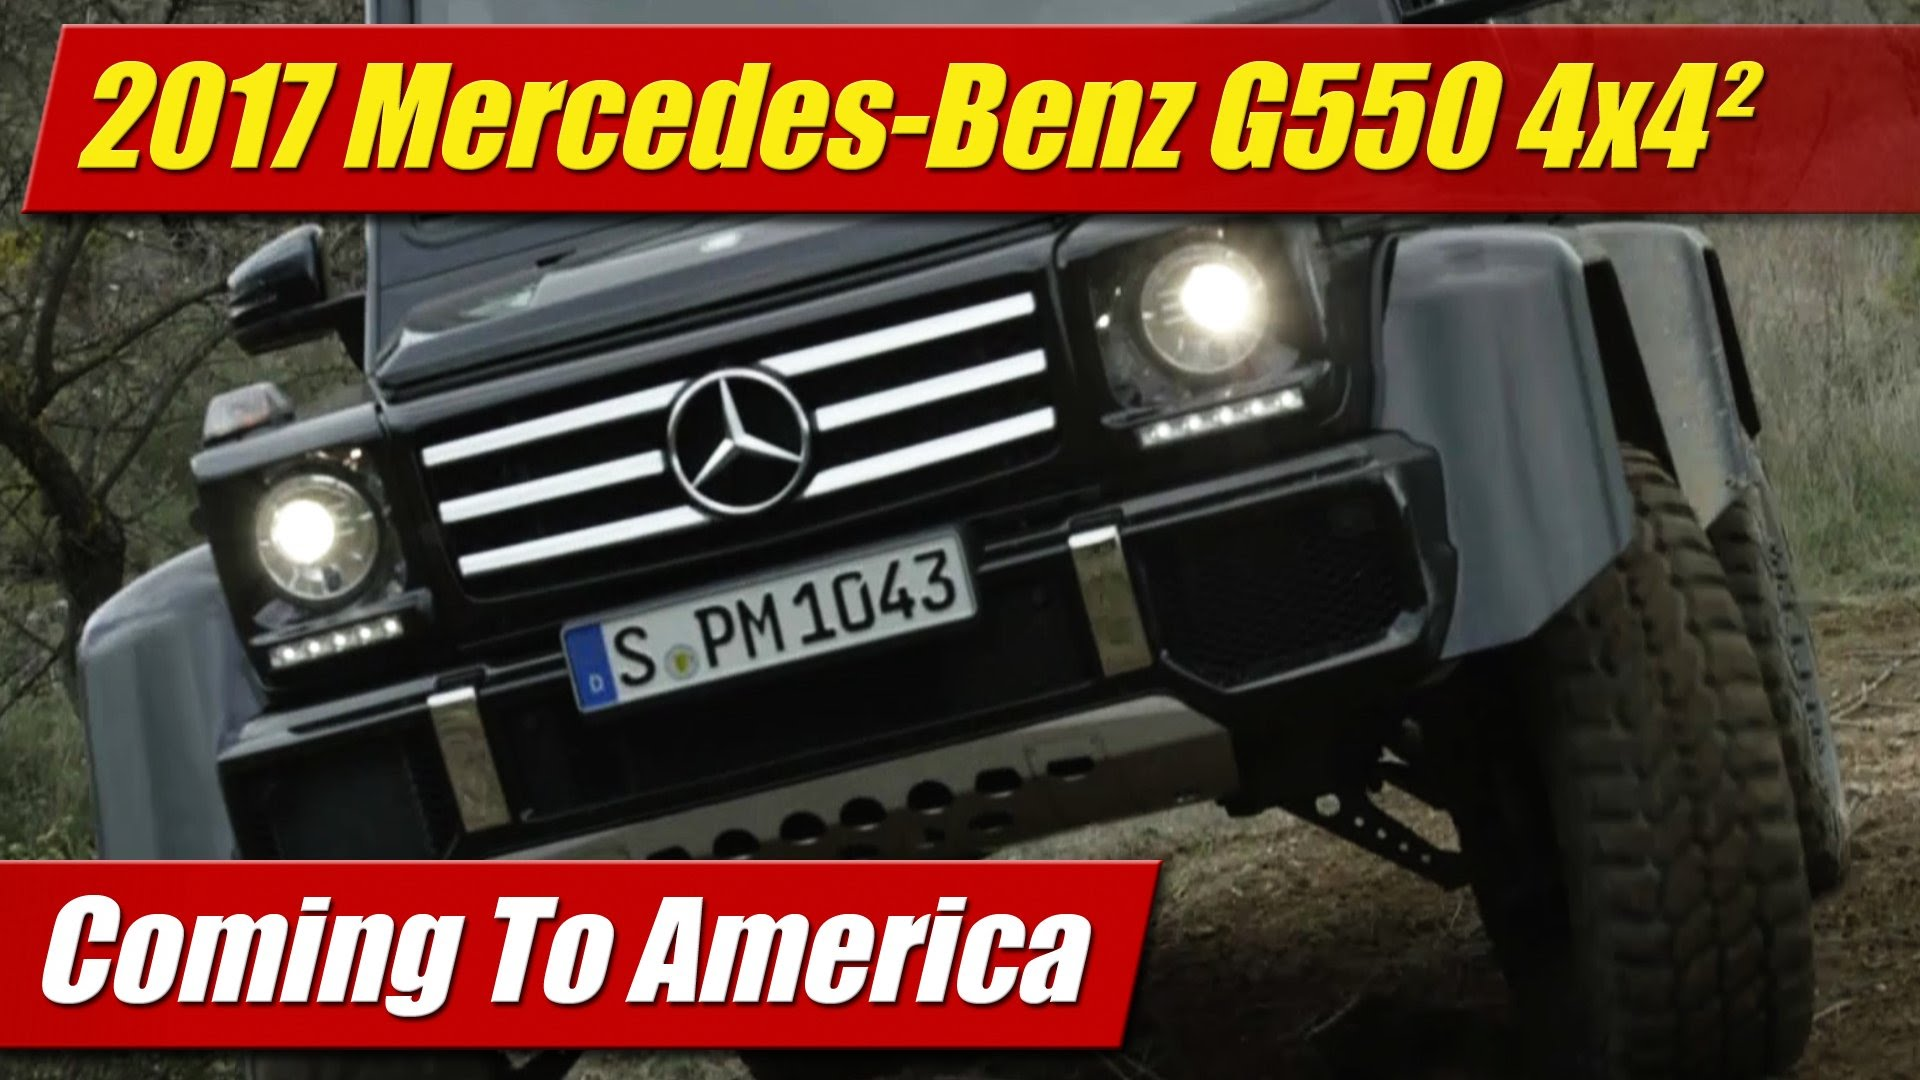 Coming to America: 2017 Mercedes-Benz G550 4×4² - TestDriven.TV